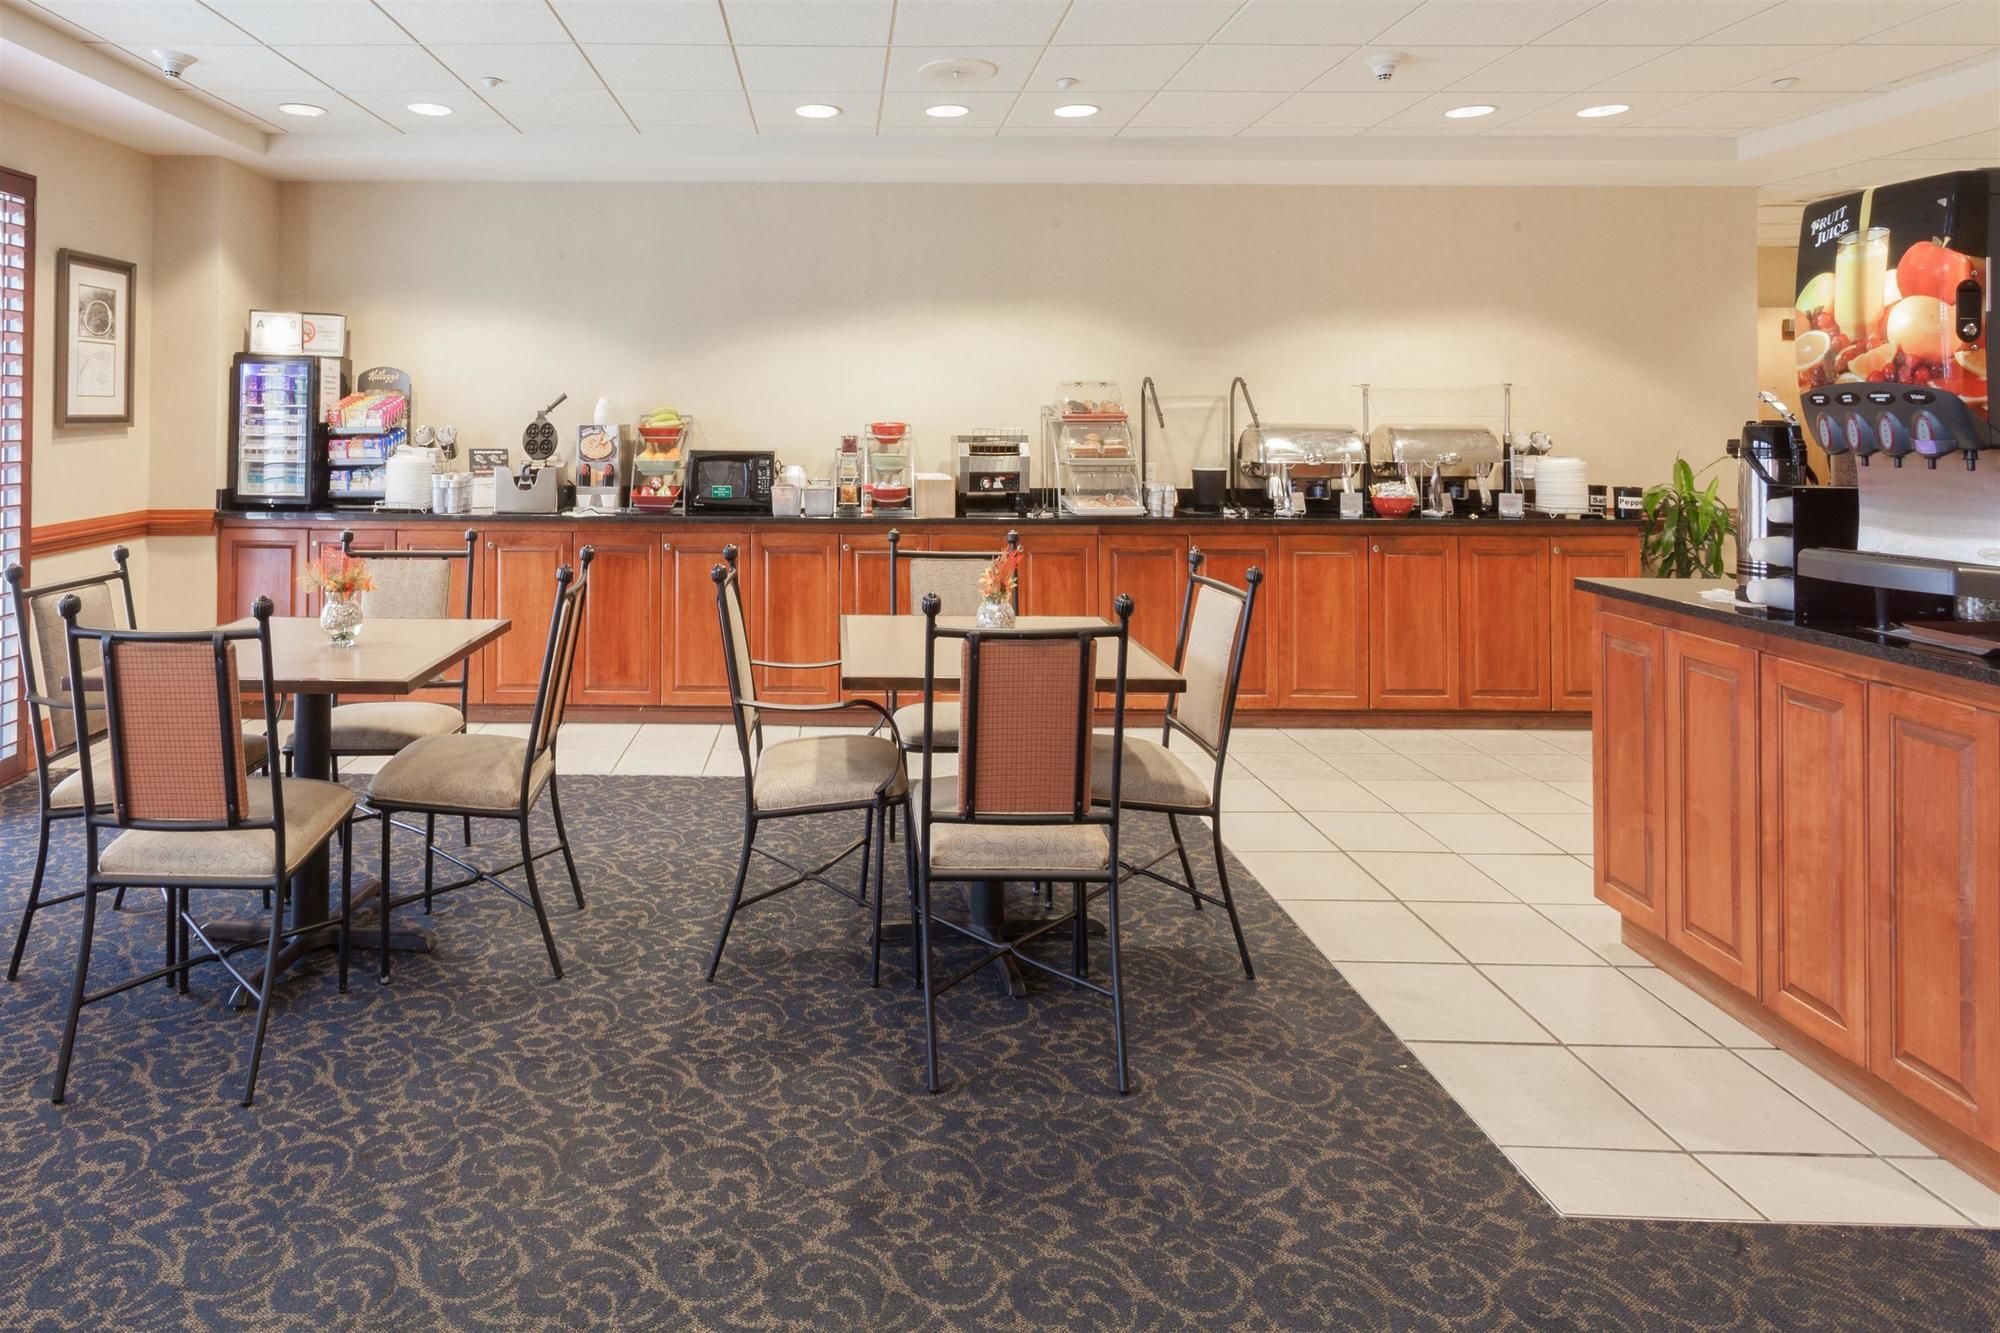 Wingate by Wyndham - Concord in Concord, NC